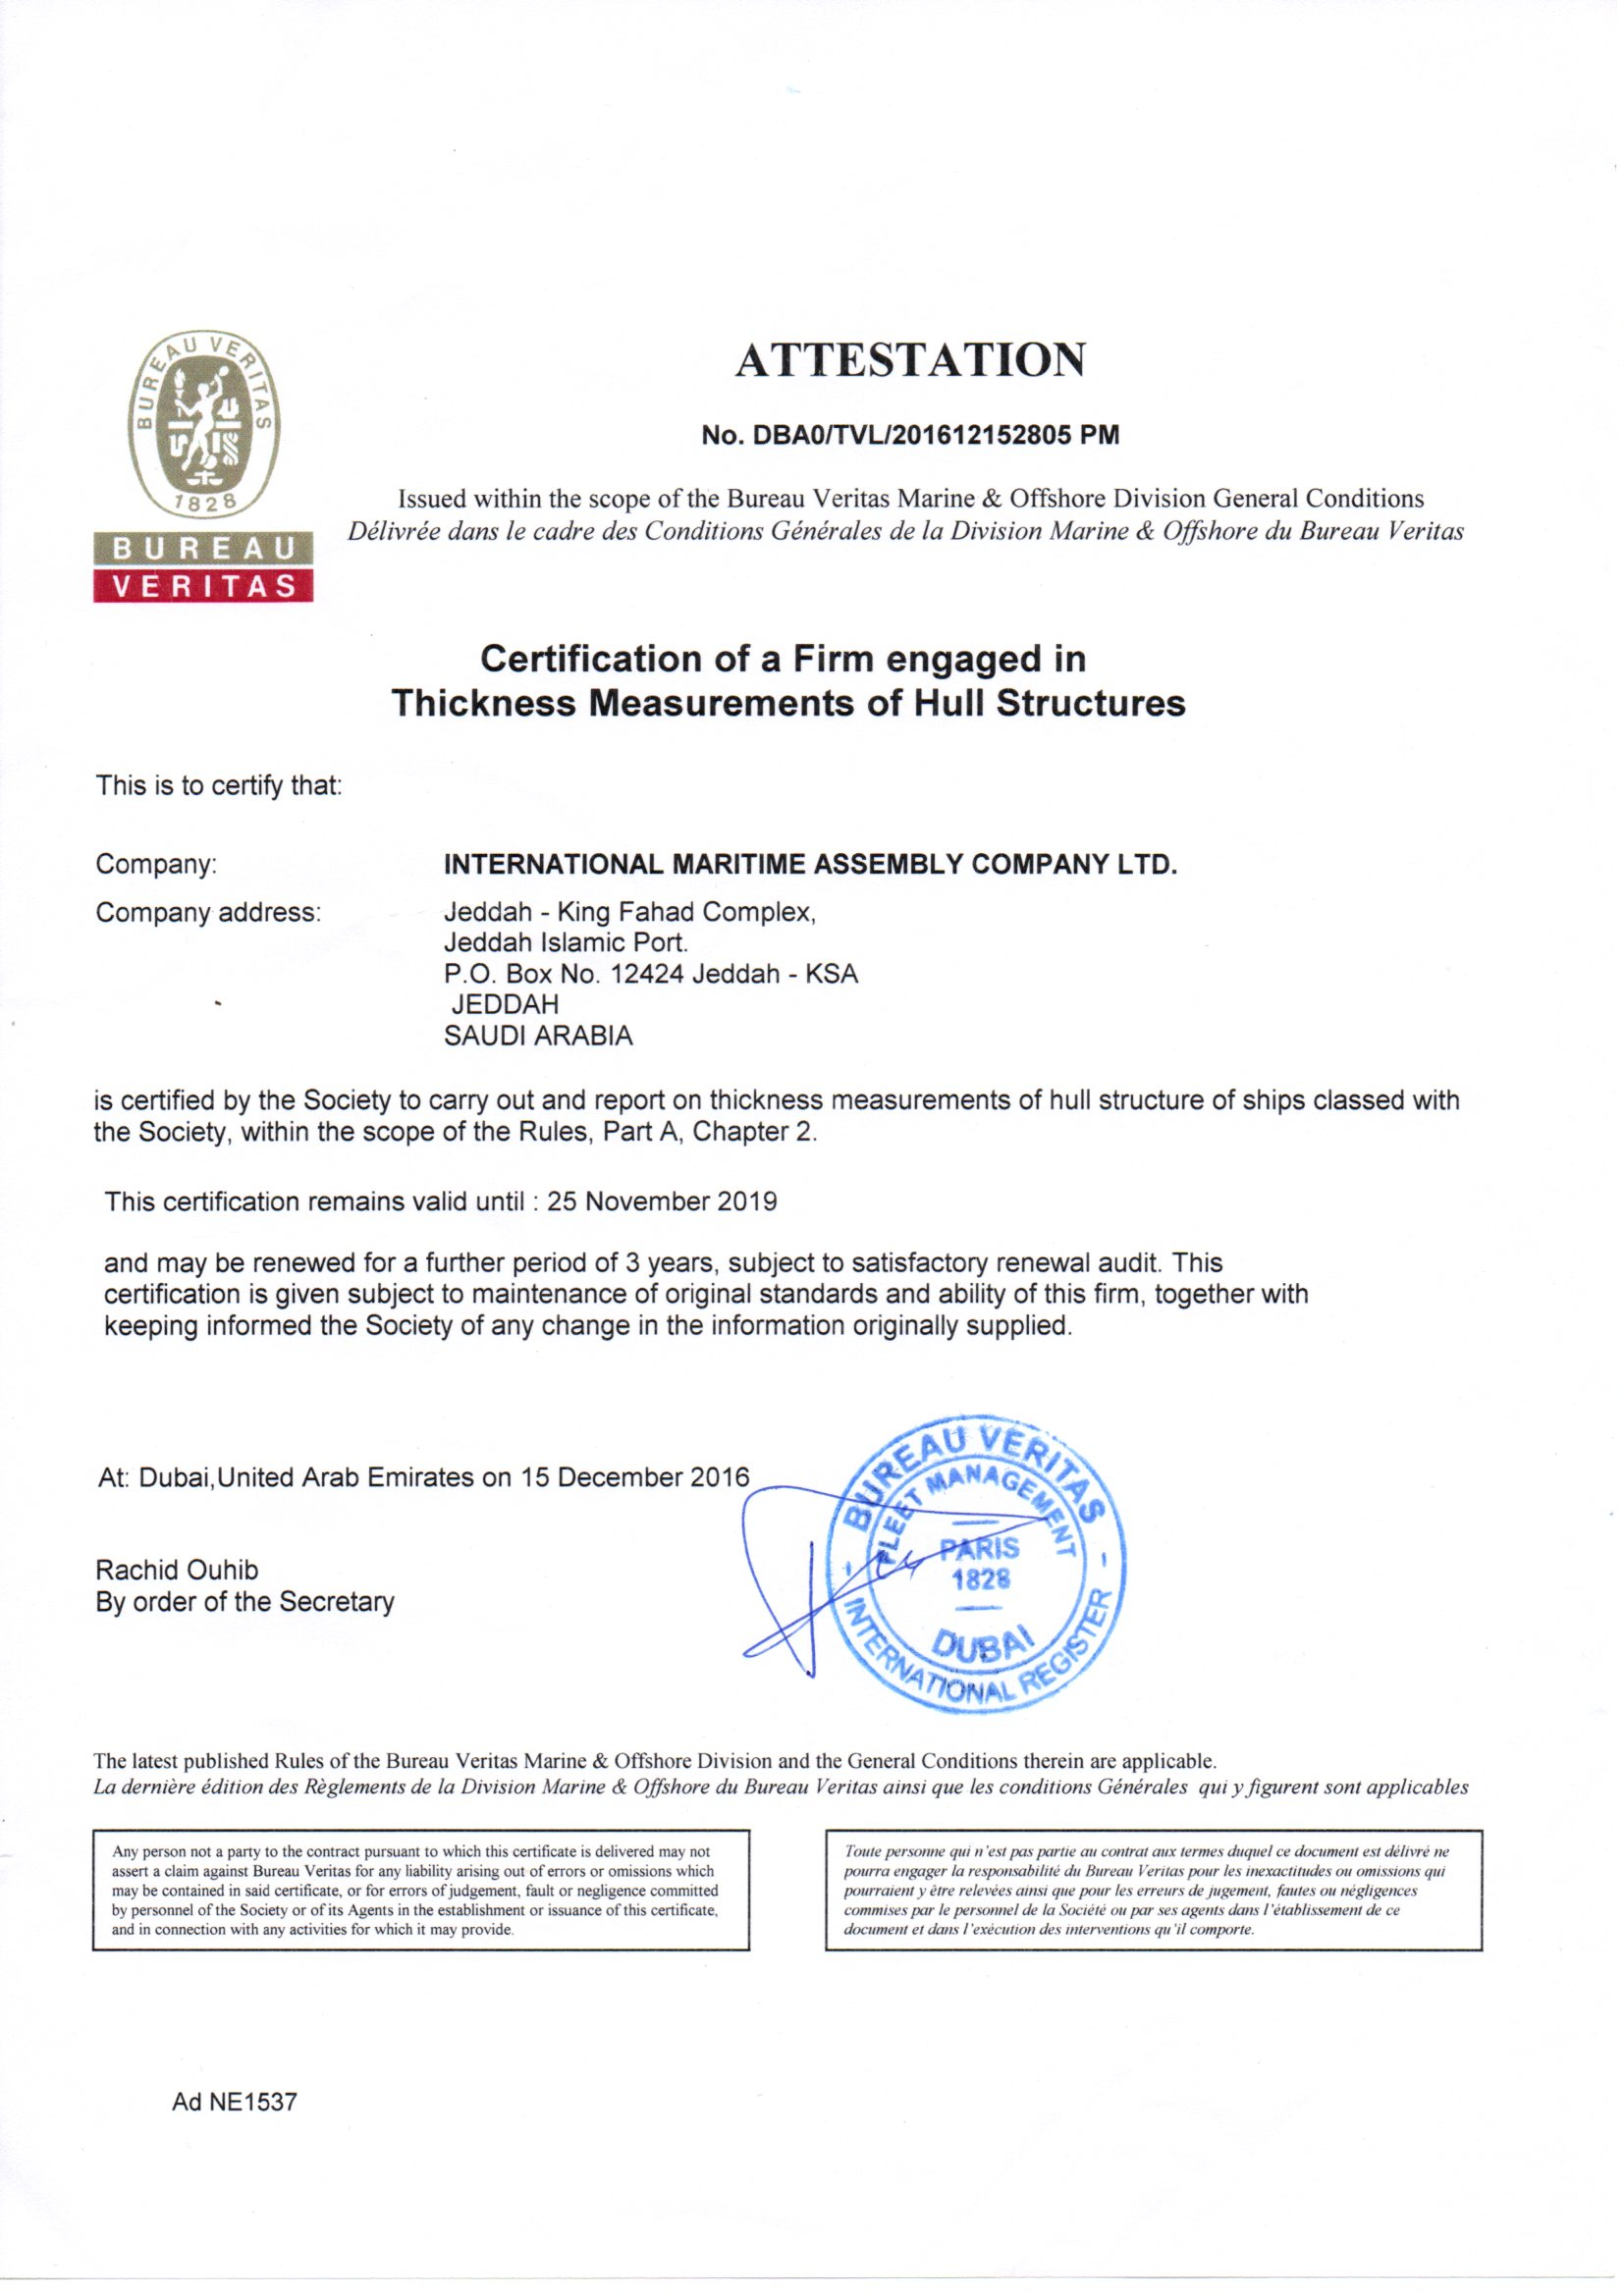 Our Certifications Imac International Maritime Assembly Company Ltd